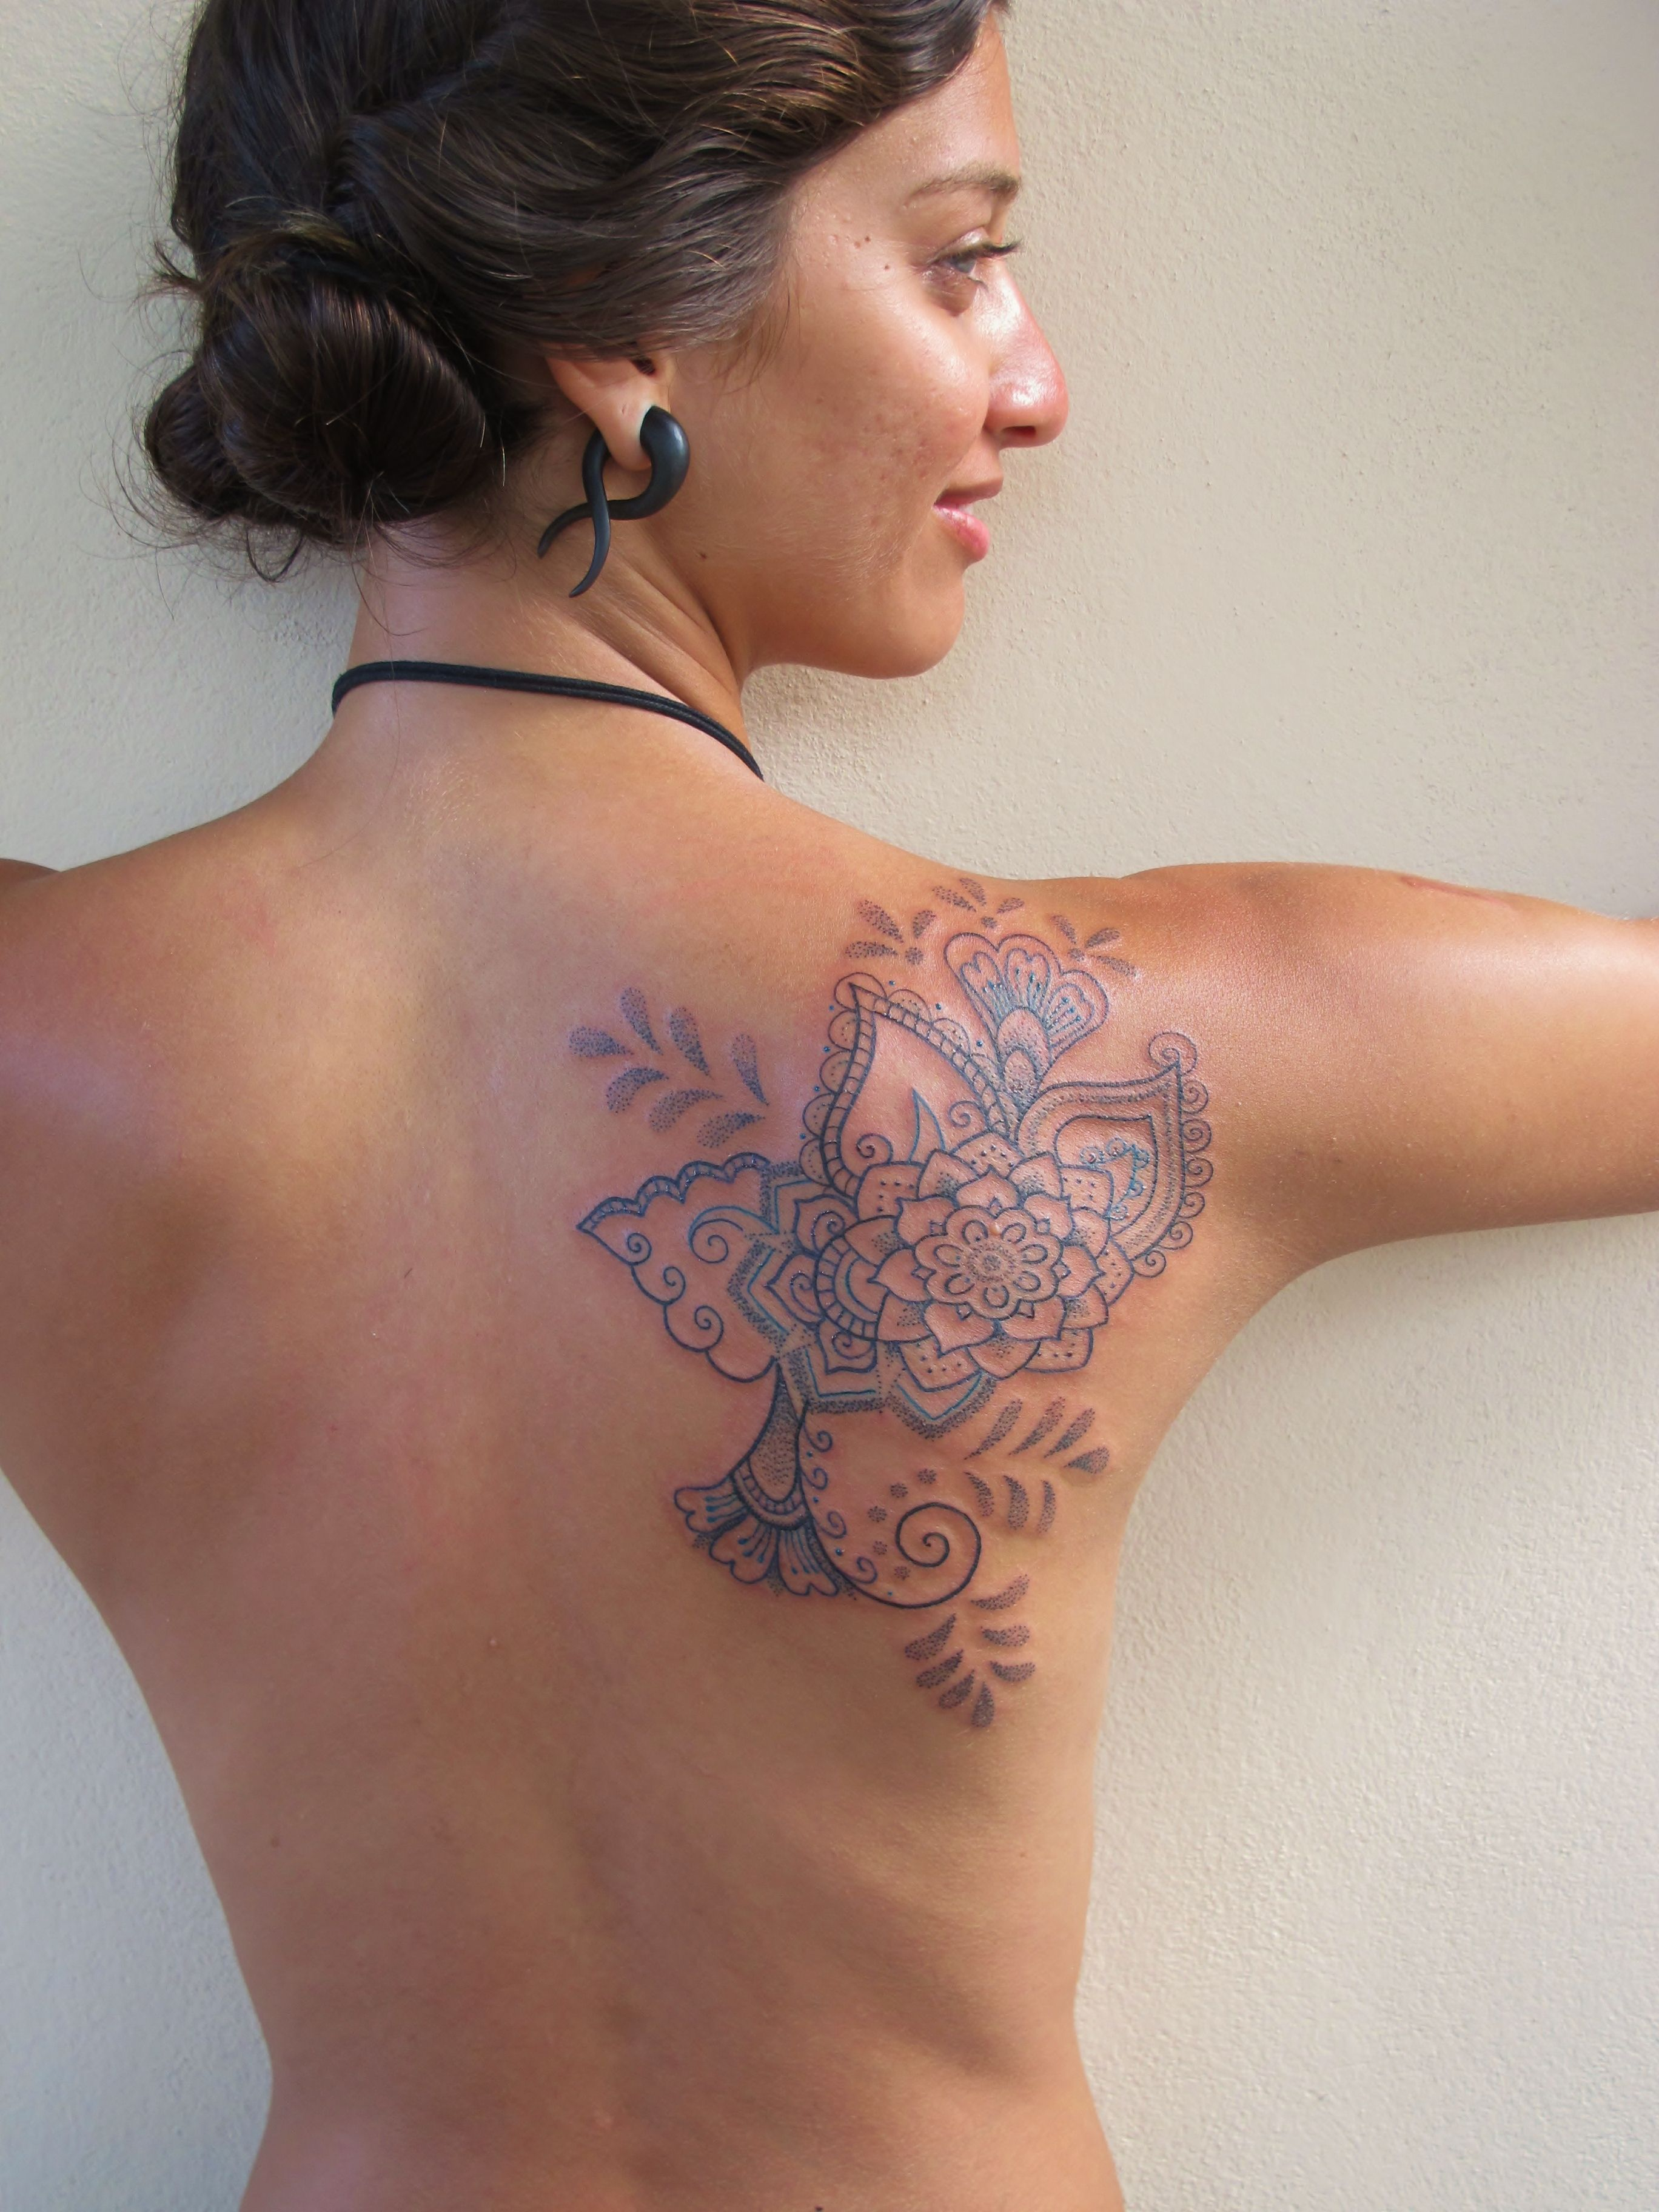 A freehand mehndi style shoulder tattoo that plans to grow a whole